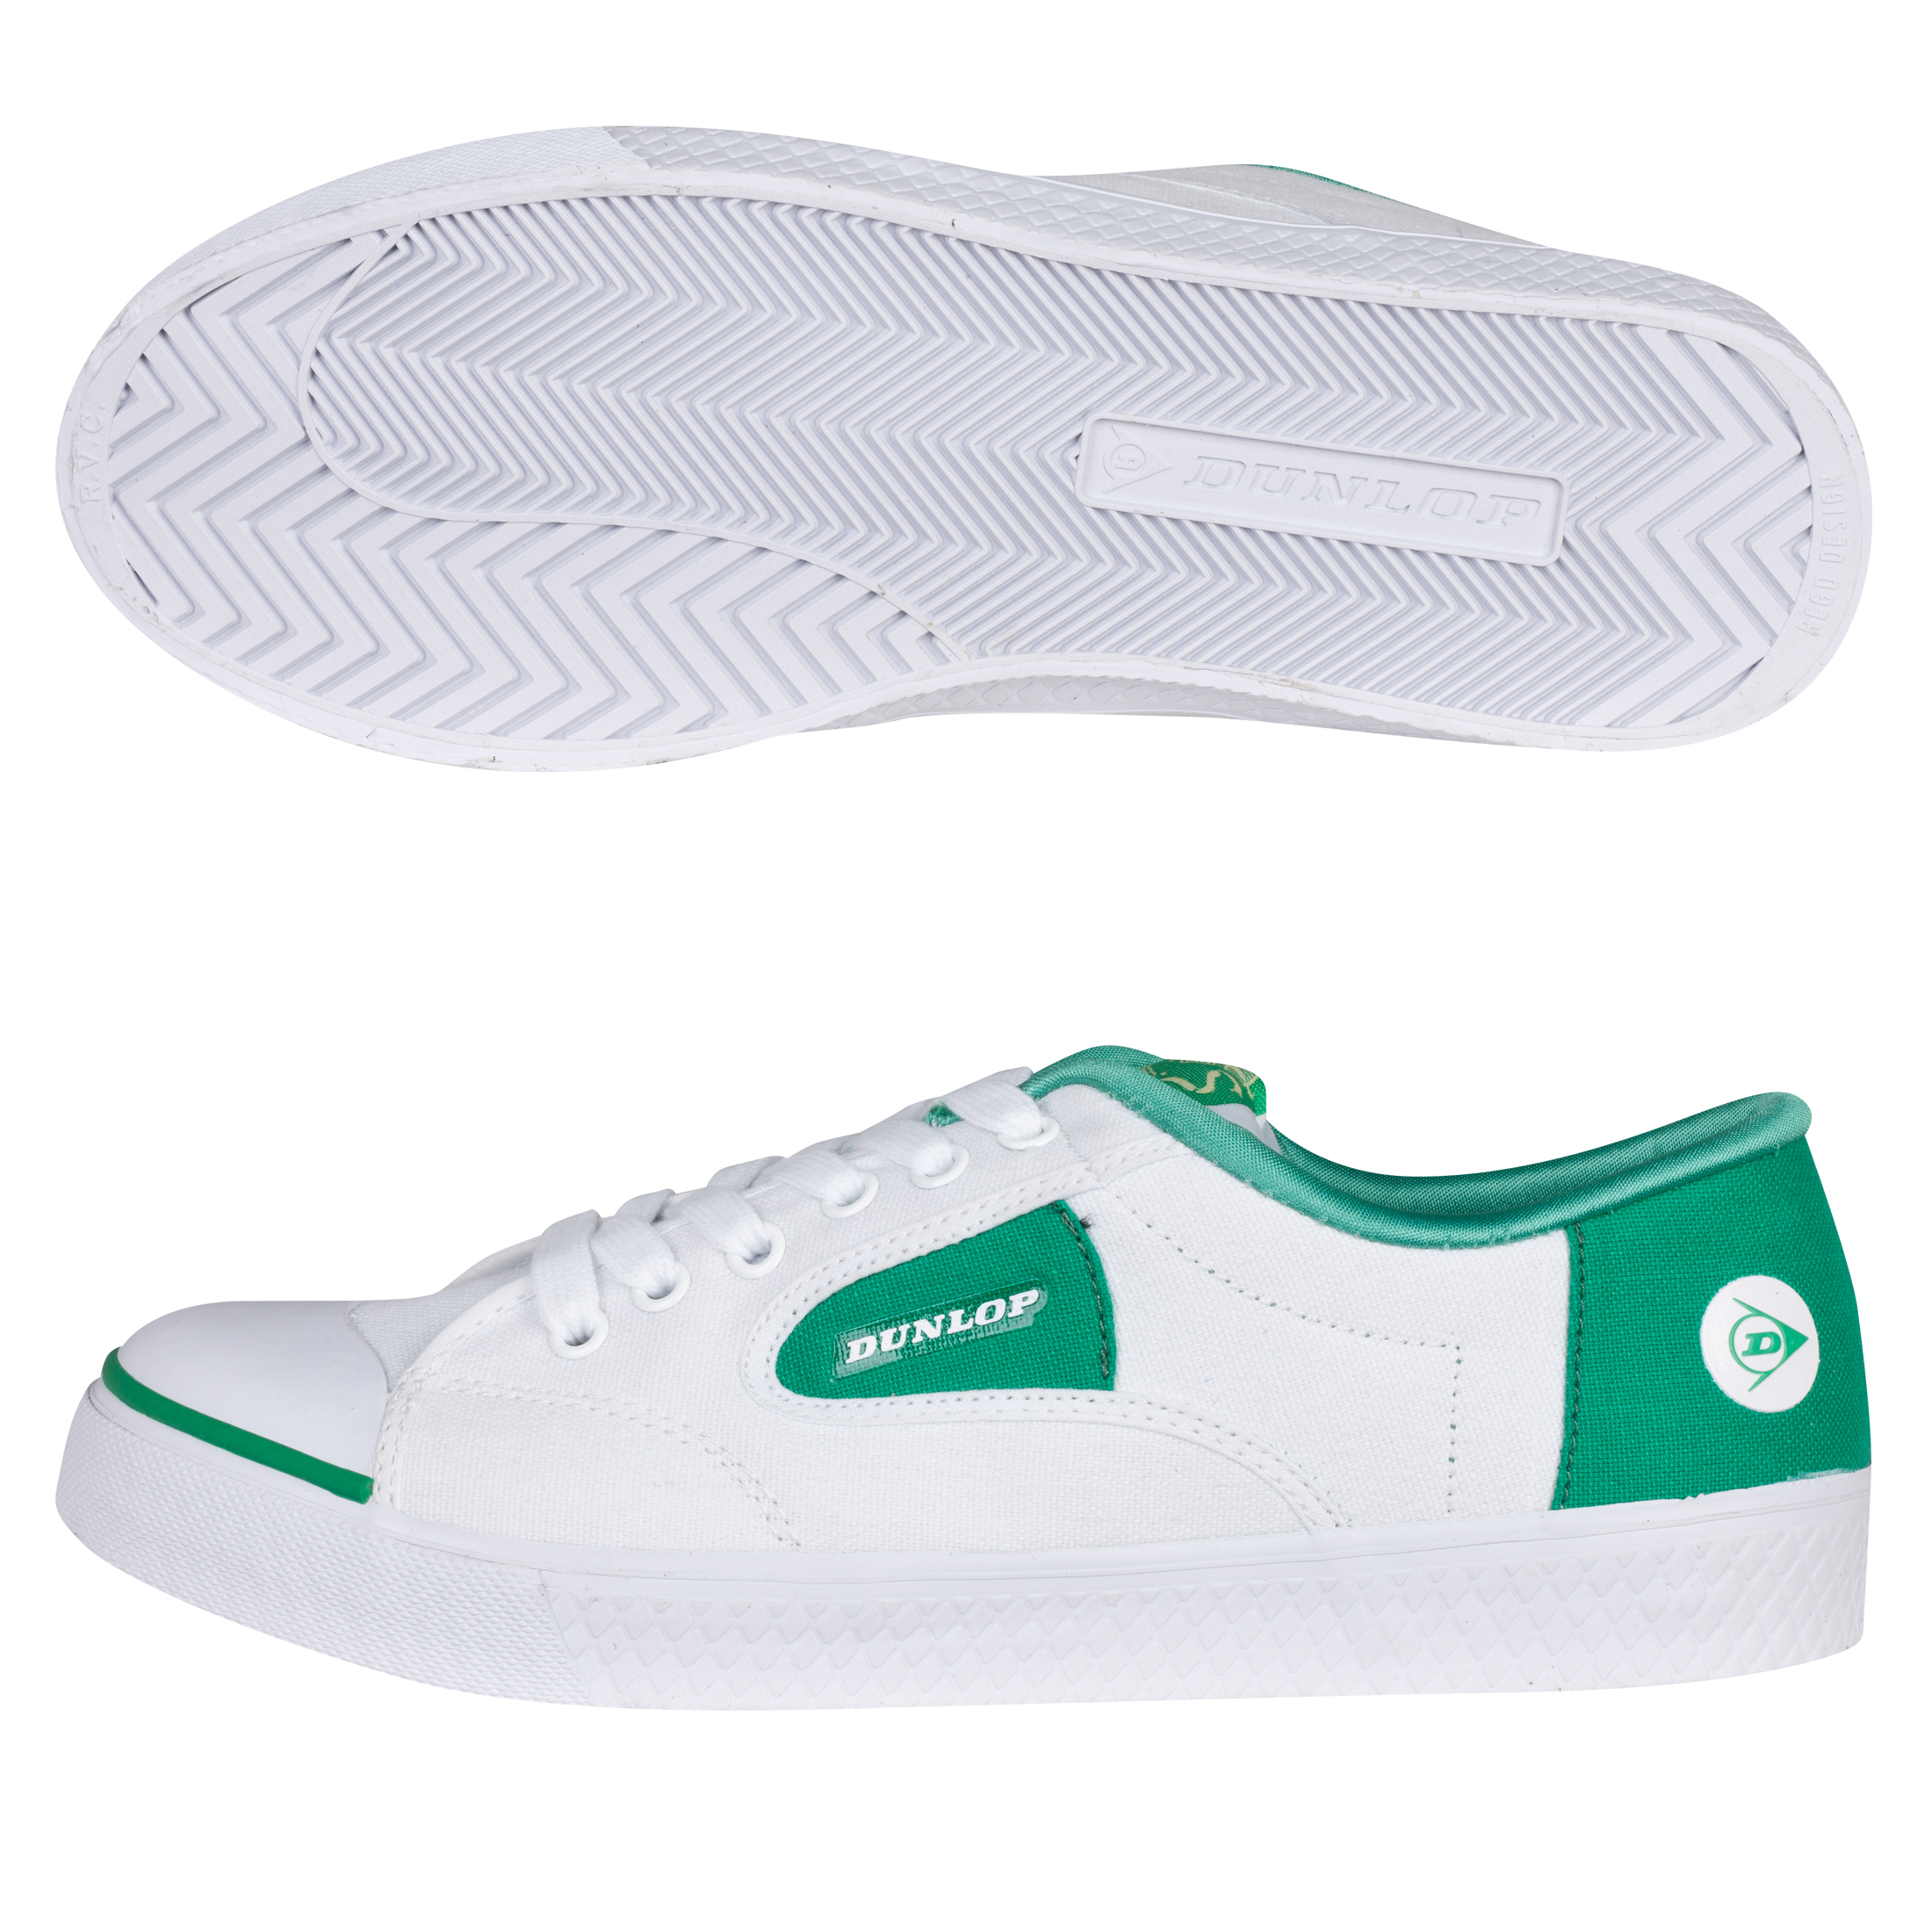 Dunlop 1555 Flash Lace Trainers - White/Green